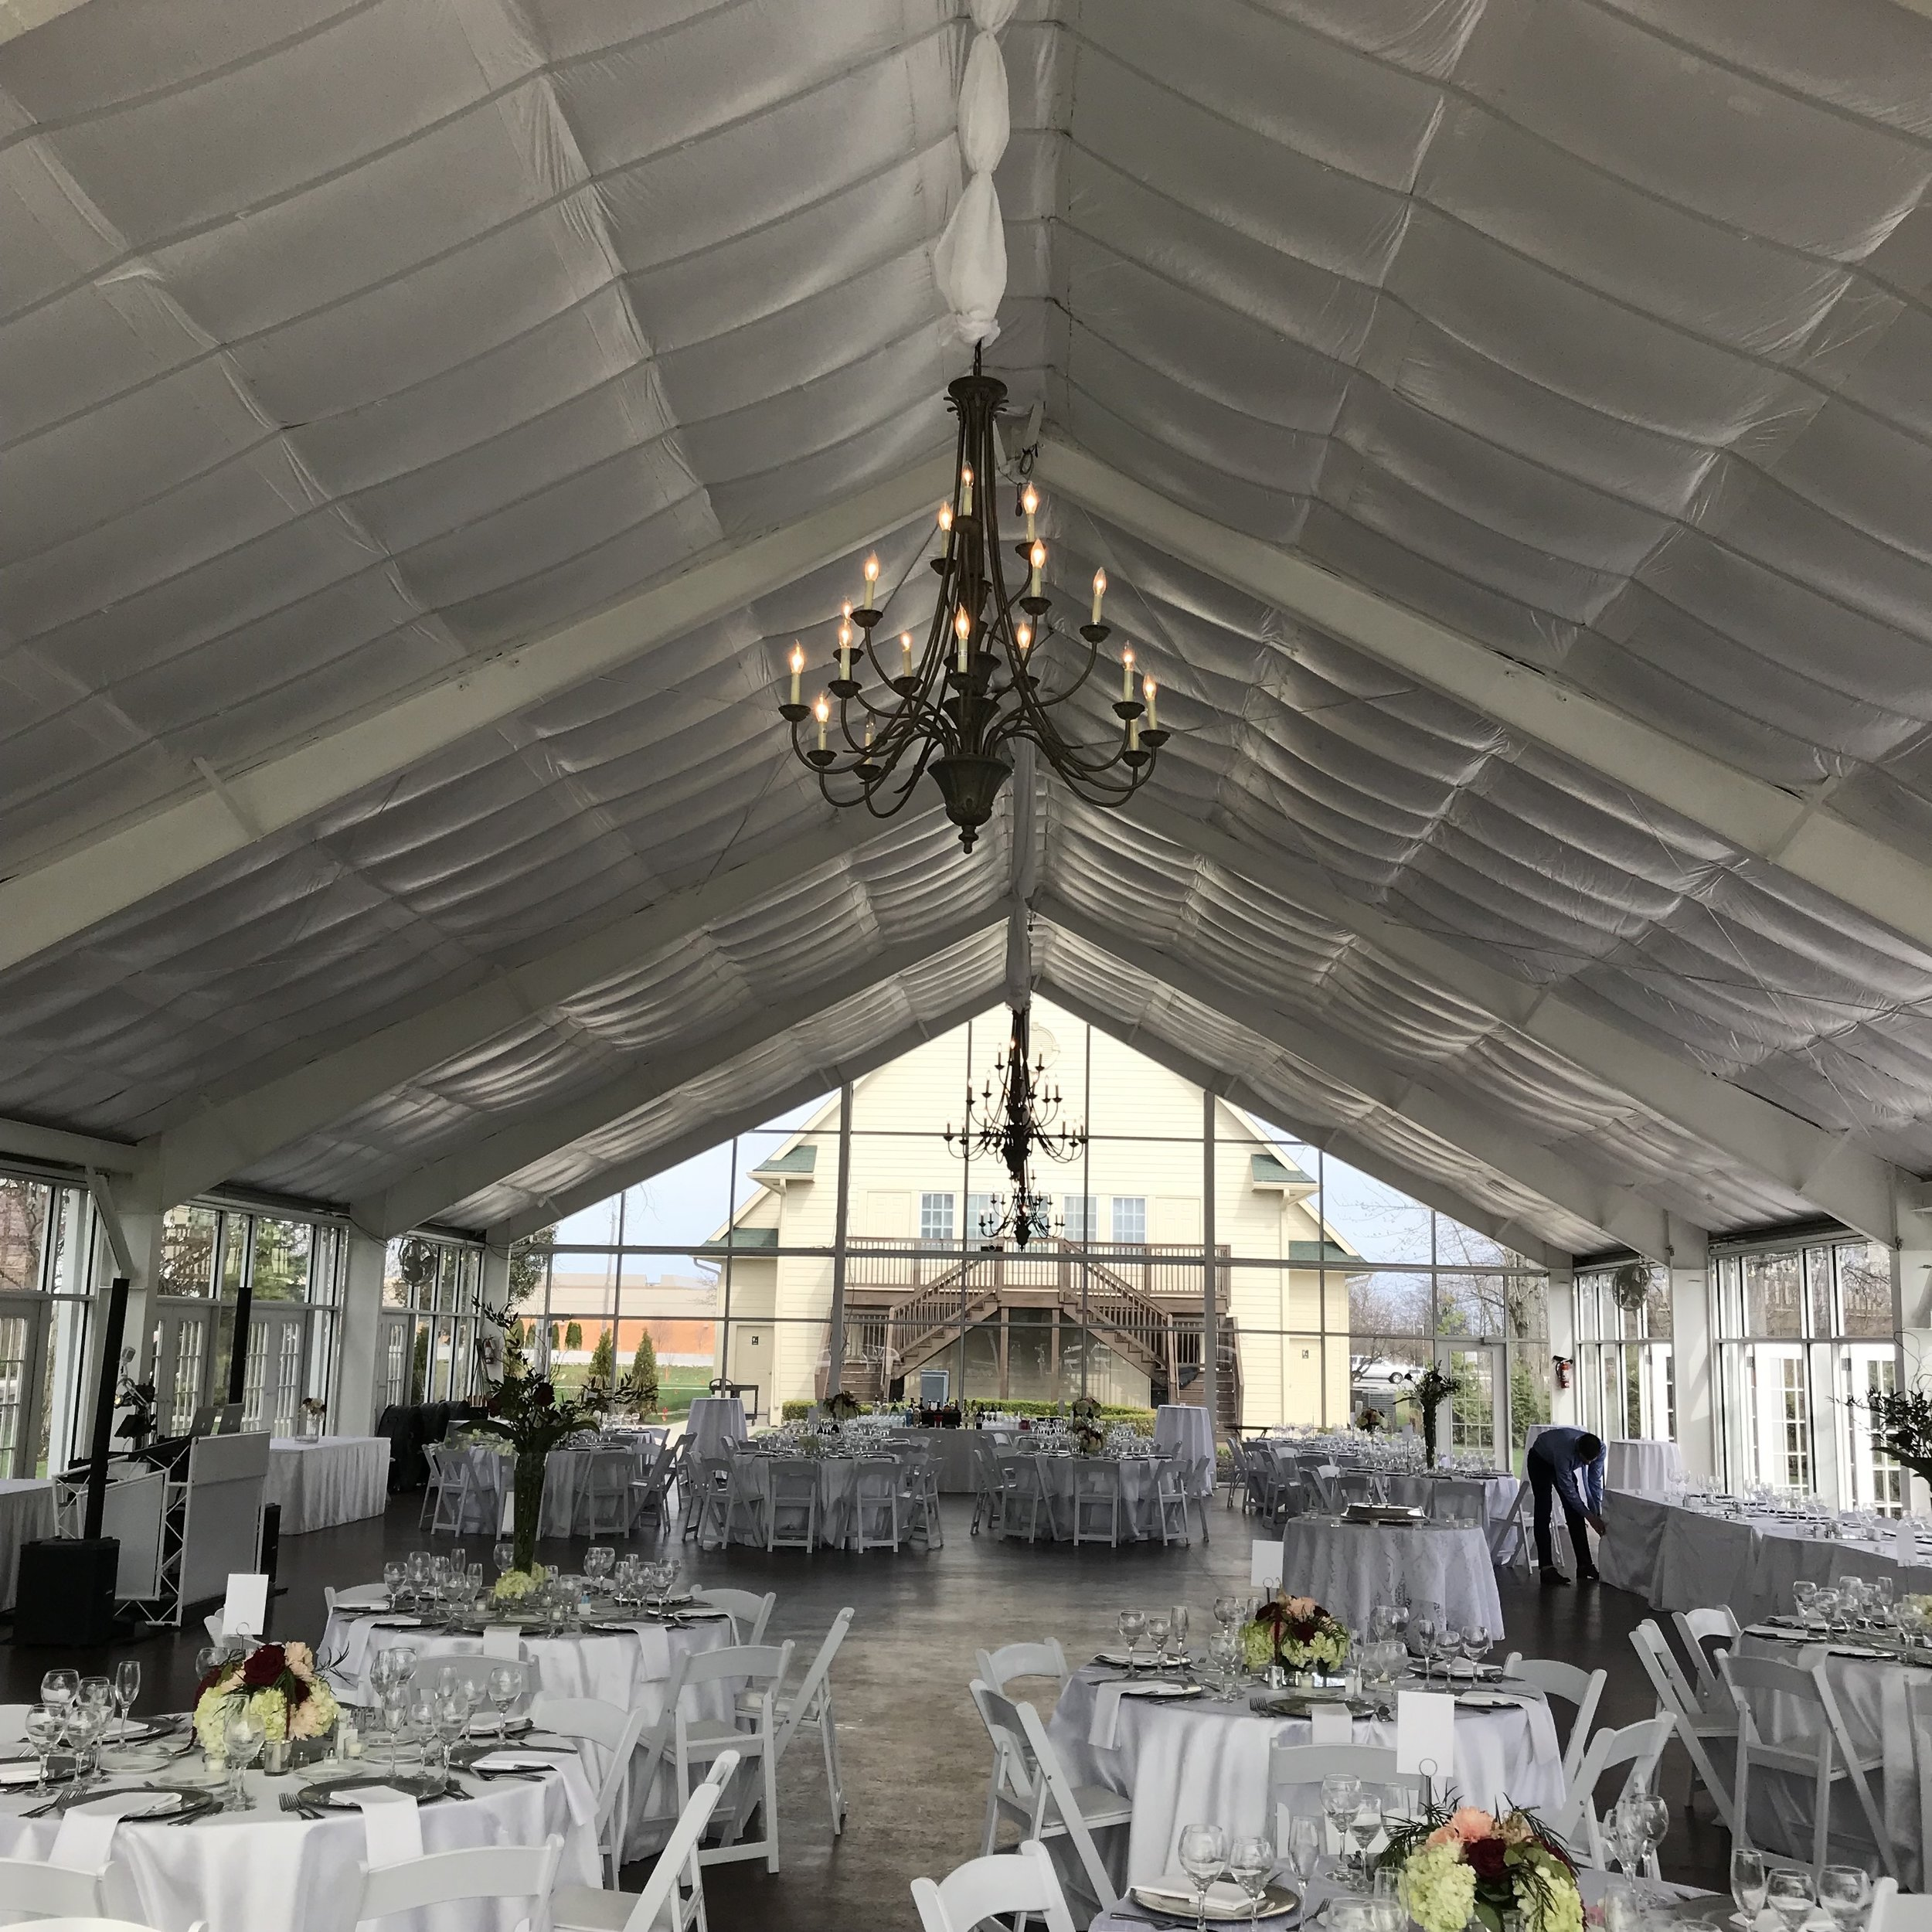 Amanda & Nathan's reception in the  Ritz Charles Garden Pavilion (rain was predicted all week but they lucked out!)